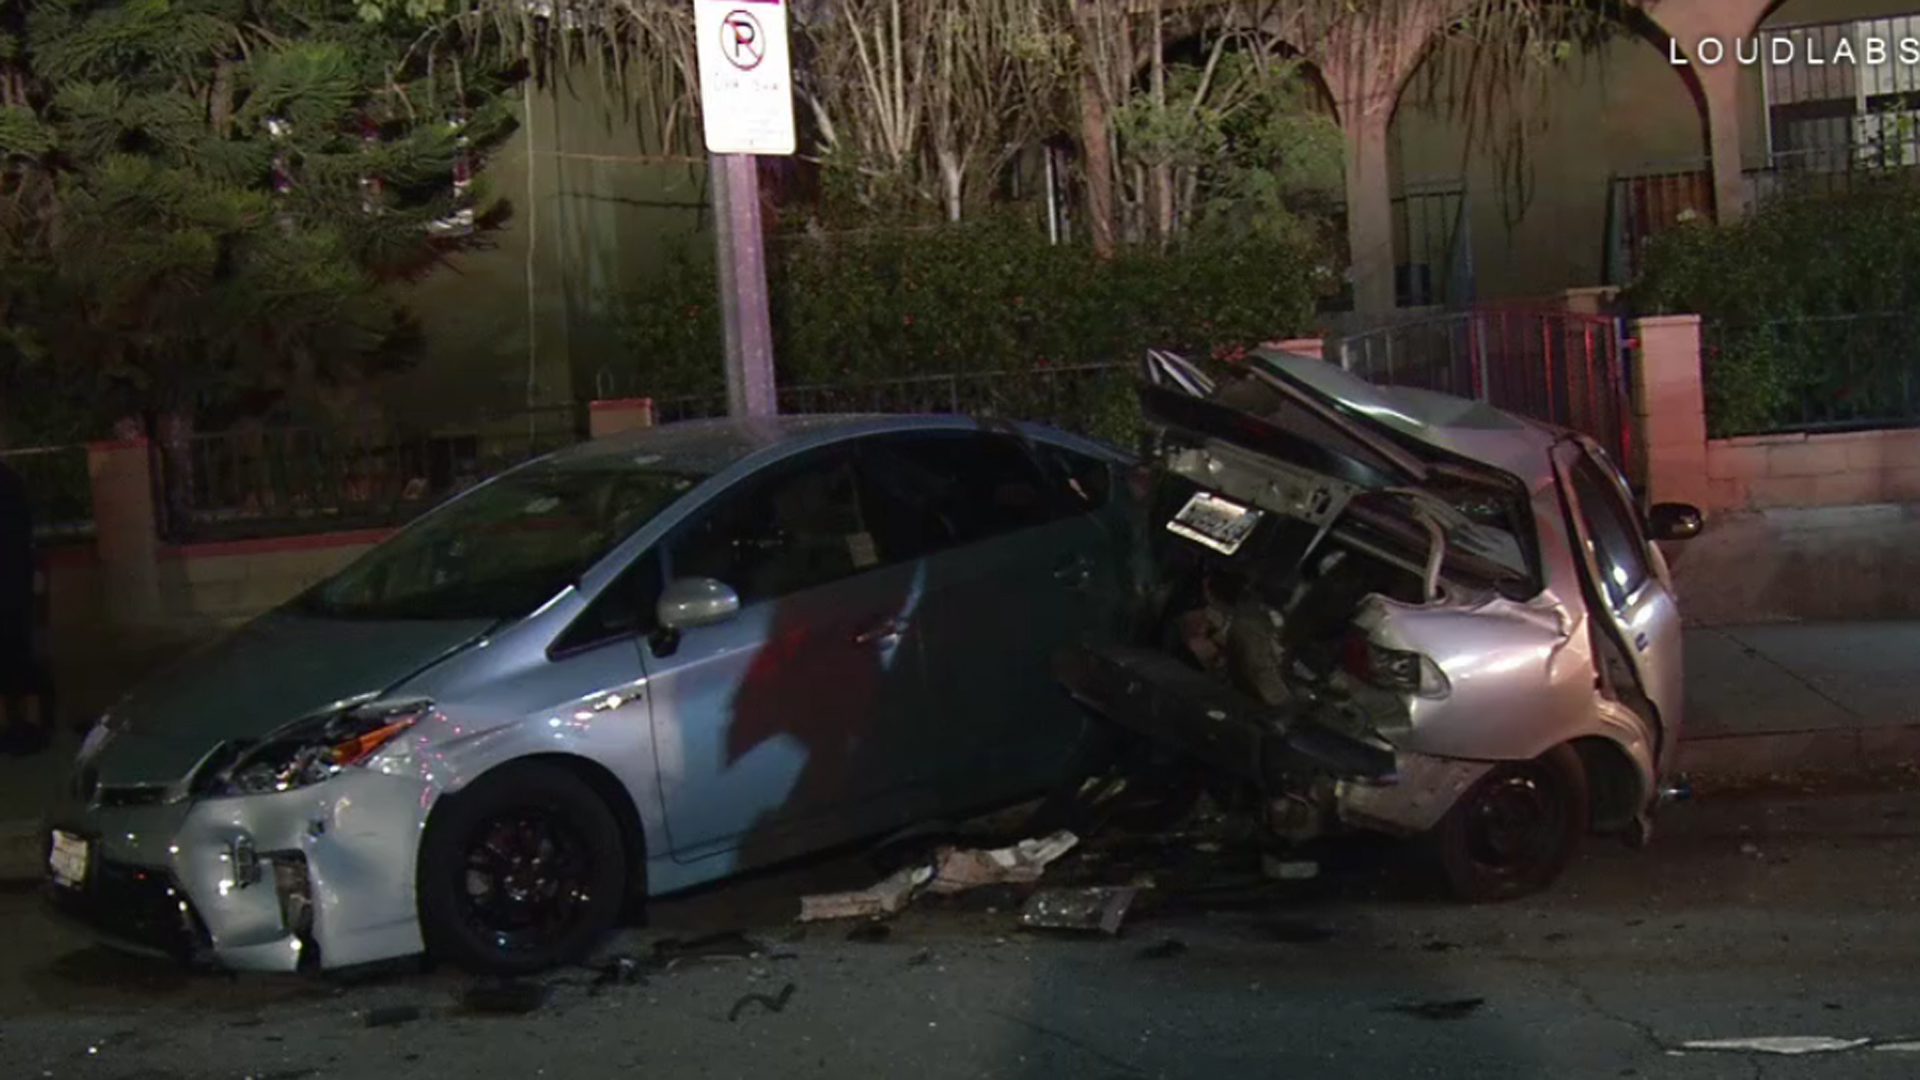 Two cars are seen visibly damaged from a collision that took place on Jan. 26, 2019, in the Cypress Park neighborhood of Los Angeles. (Credit: Loudlabs)